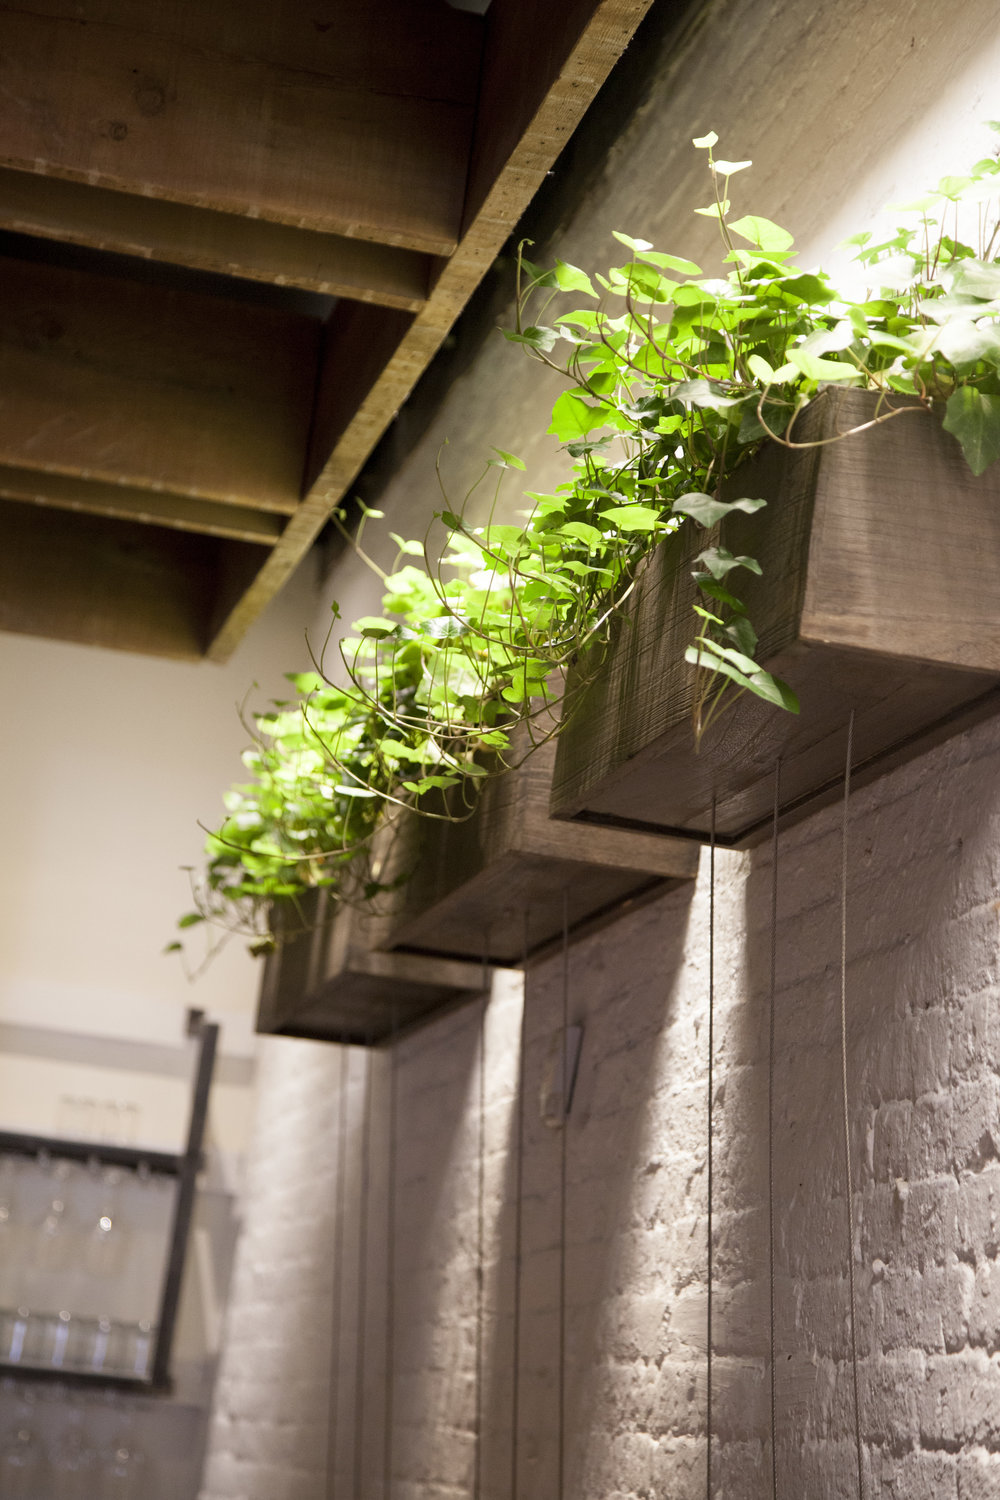 The entryway and walls of the restaurant are lined with overhead baskets of ivy.